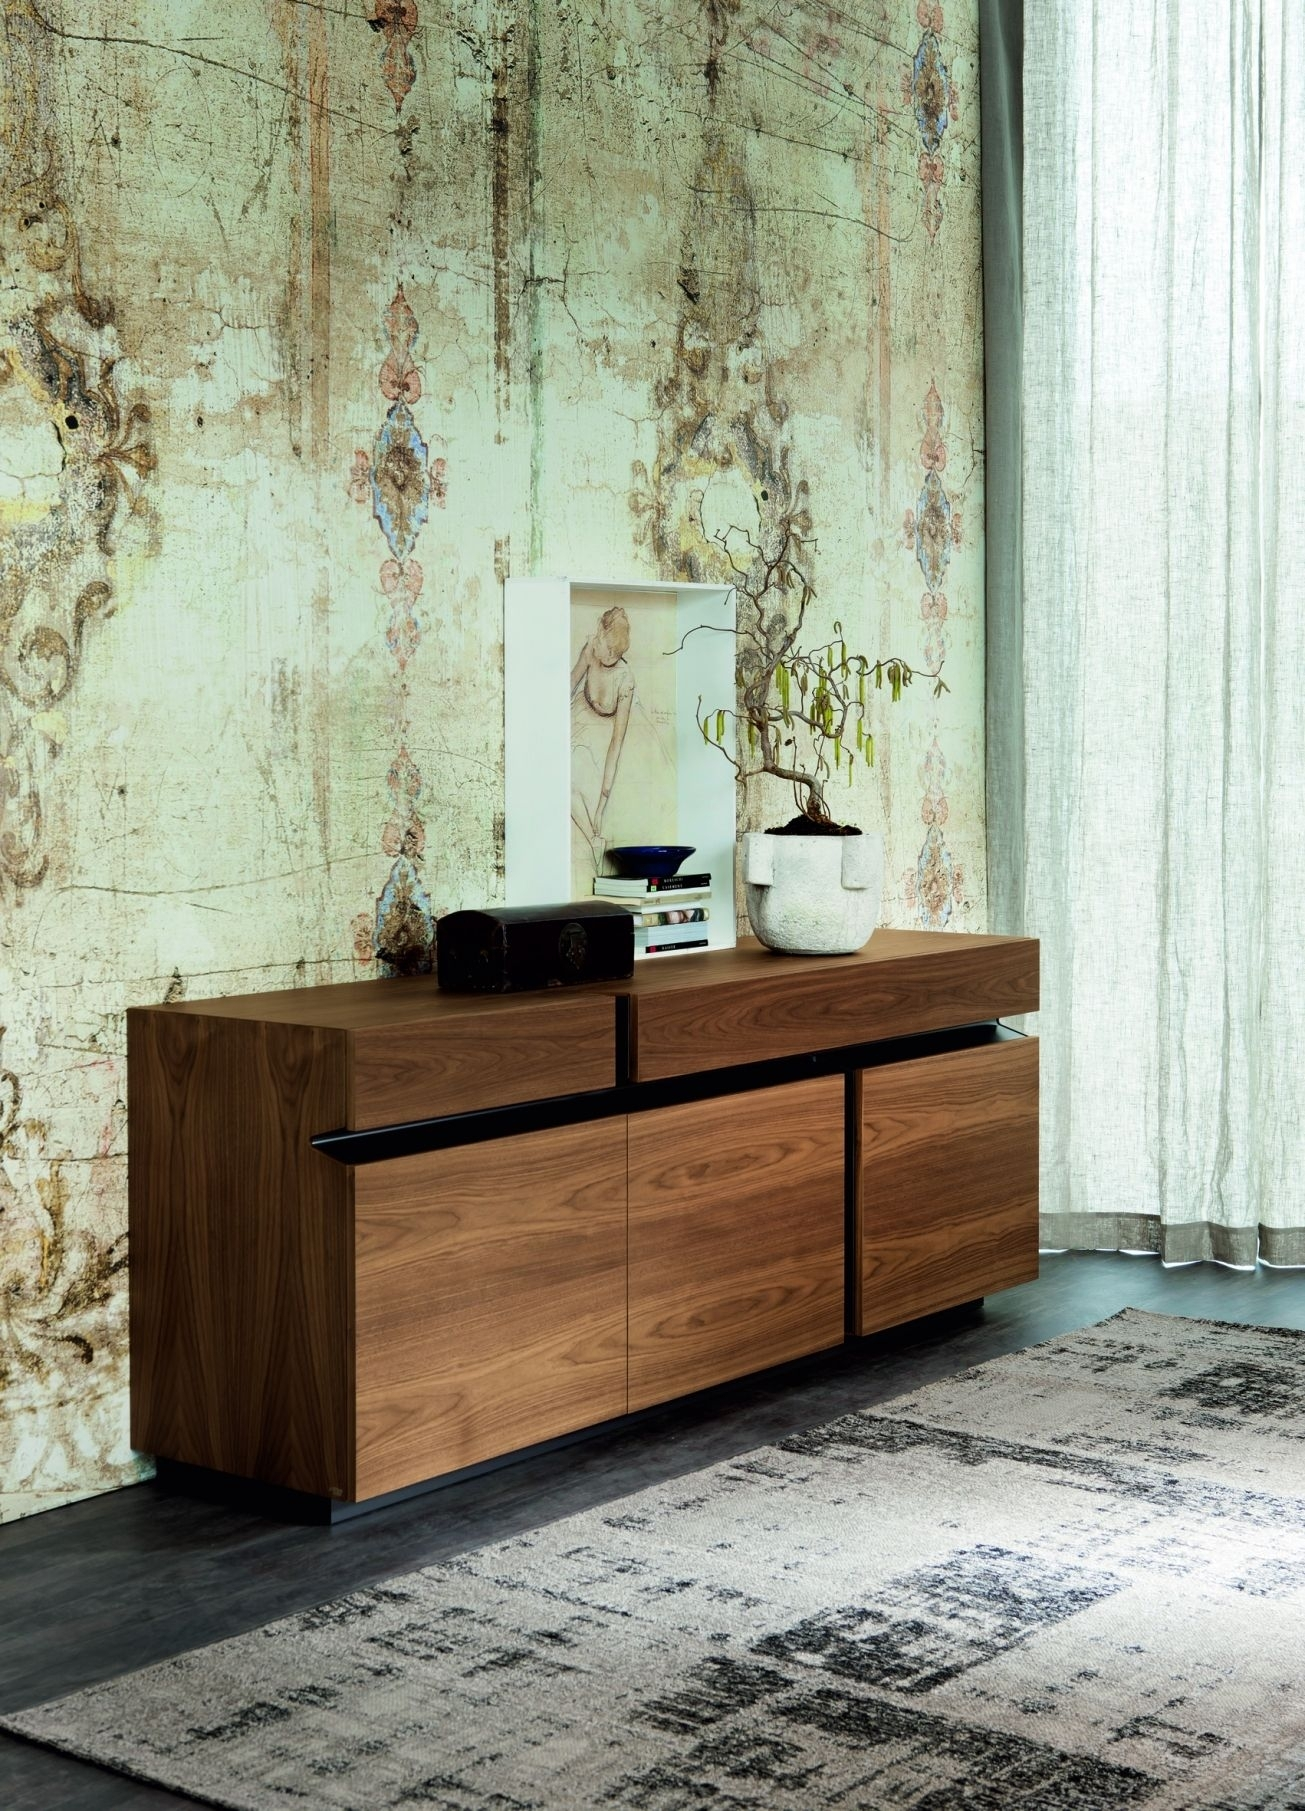 The Prisma Is A Striking Sideboard With 3 Doors And 2 Drawers pertaining to Black Burnt Oak Sideboards (Image 26 of 30)